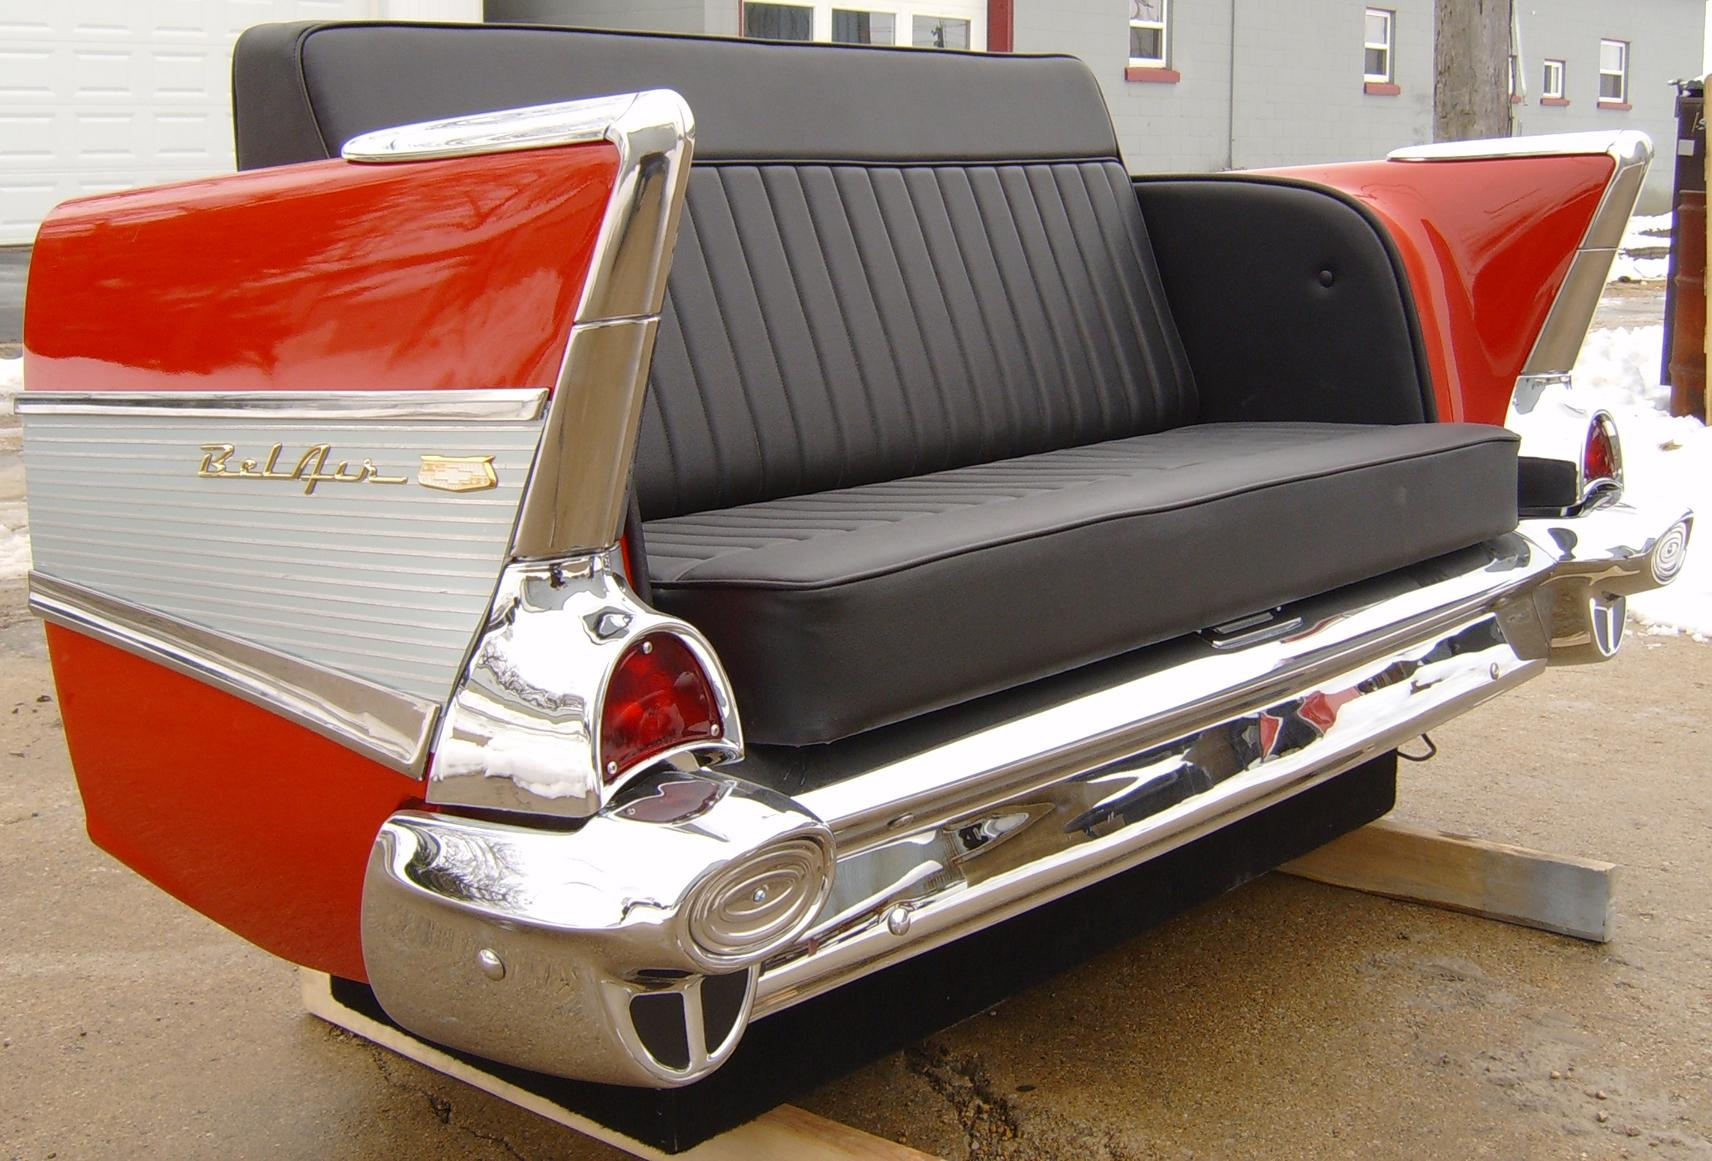 New Retro Cars : Restored Classic Car Furniture And Decor Within Classic Sofas For Sale (Image 11 of 20)